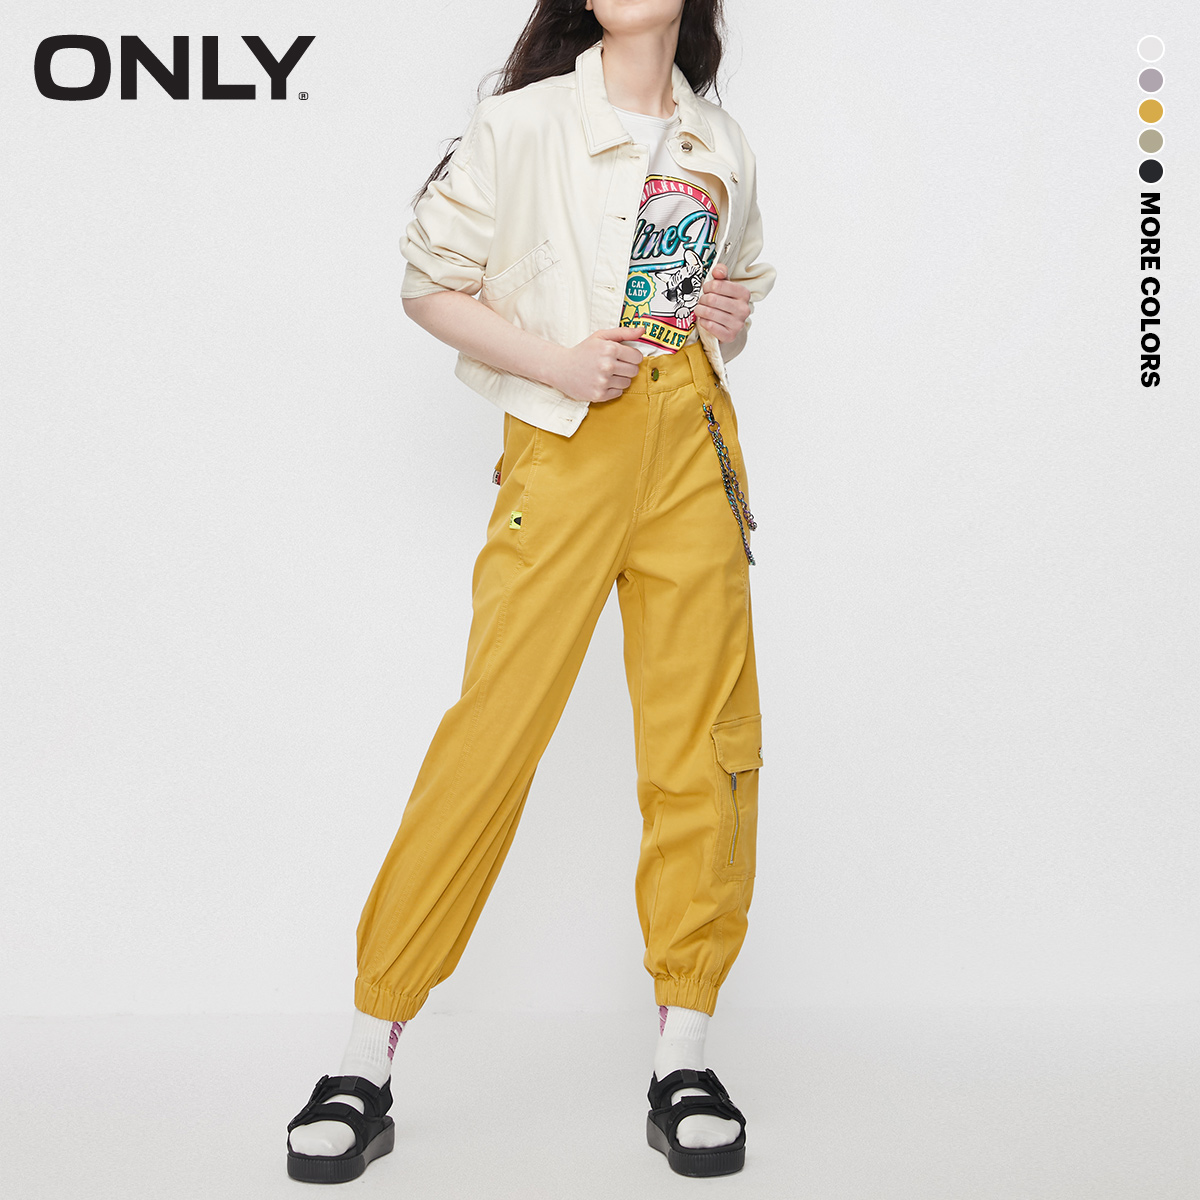 Only2020 summer new legging loose 9-point Harun pants thin casual pants for women 120114519